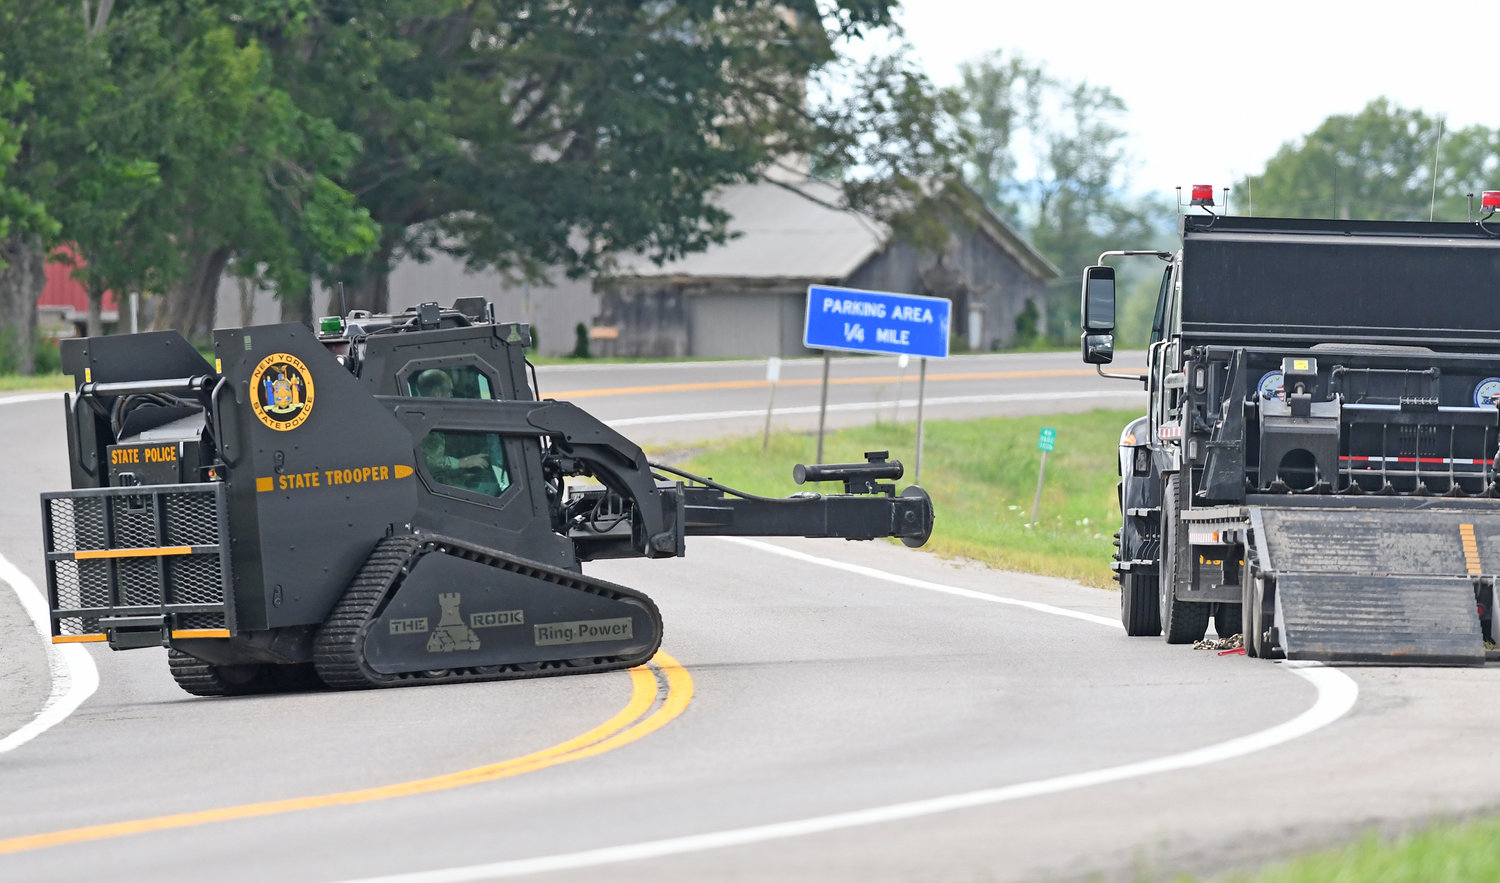 BATTERING RAM READY — A New York State Police Bobcat with battering ram attachment stages near the stand-off on Route 46 in Verona Friday afternoon. State police said an armed man was barricaded inside a barn. Troopers said the man agreed to surrender peacefully, and the battering ram was not used.